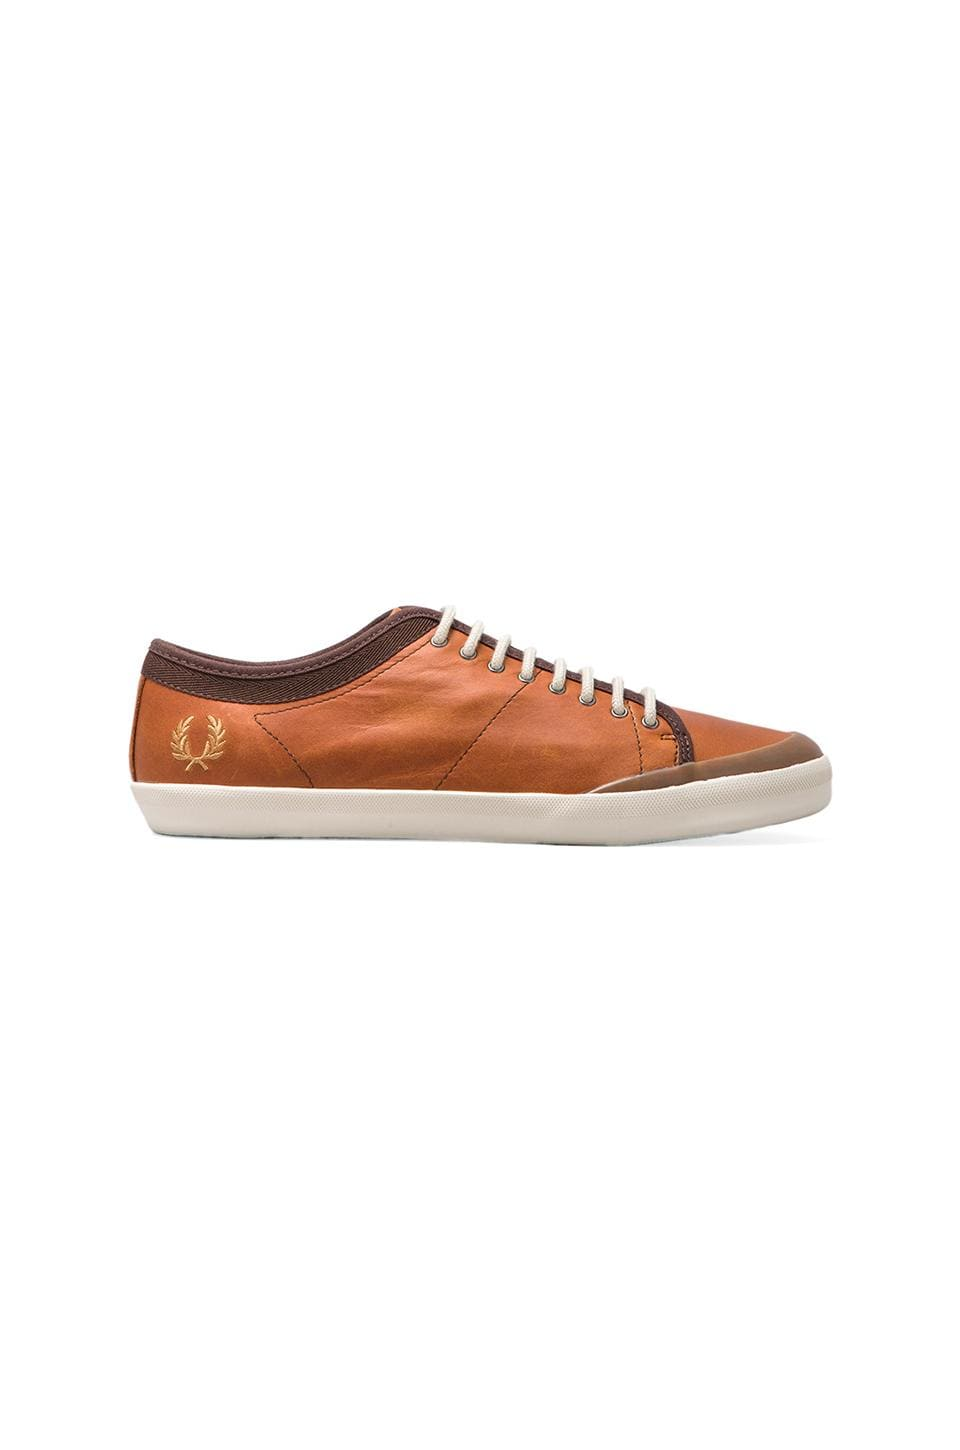 Fred Perry Hellier Leather in Dark Chocolate/Rubber